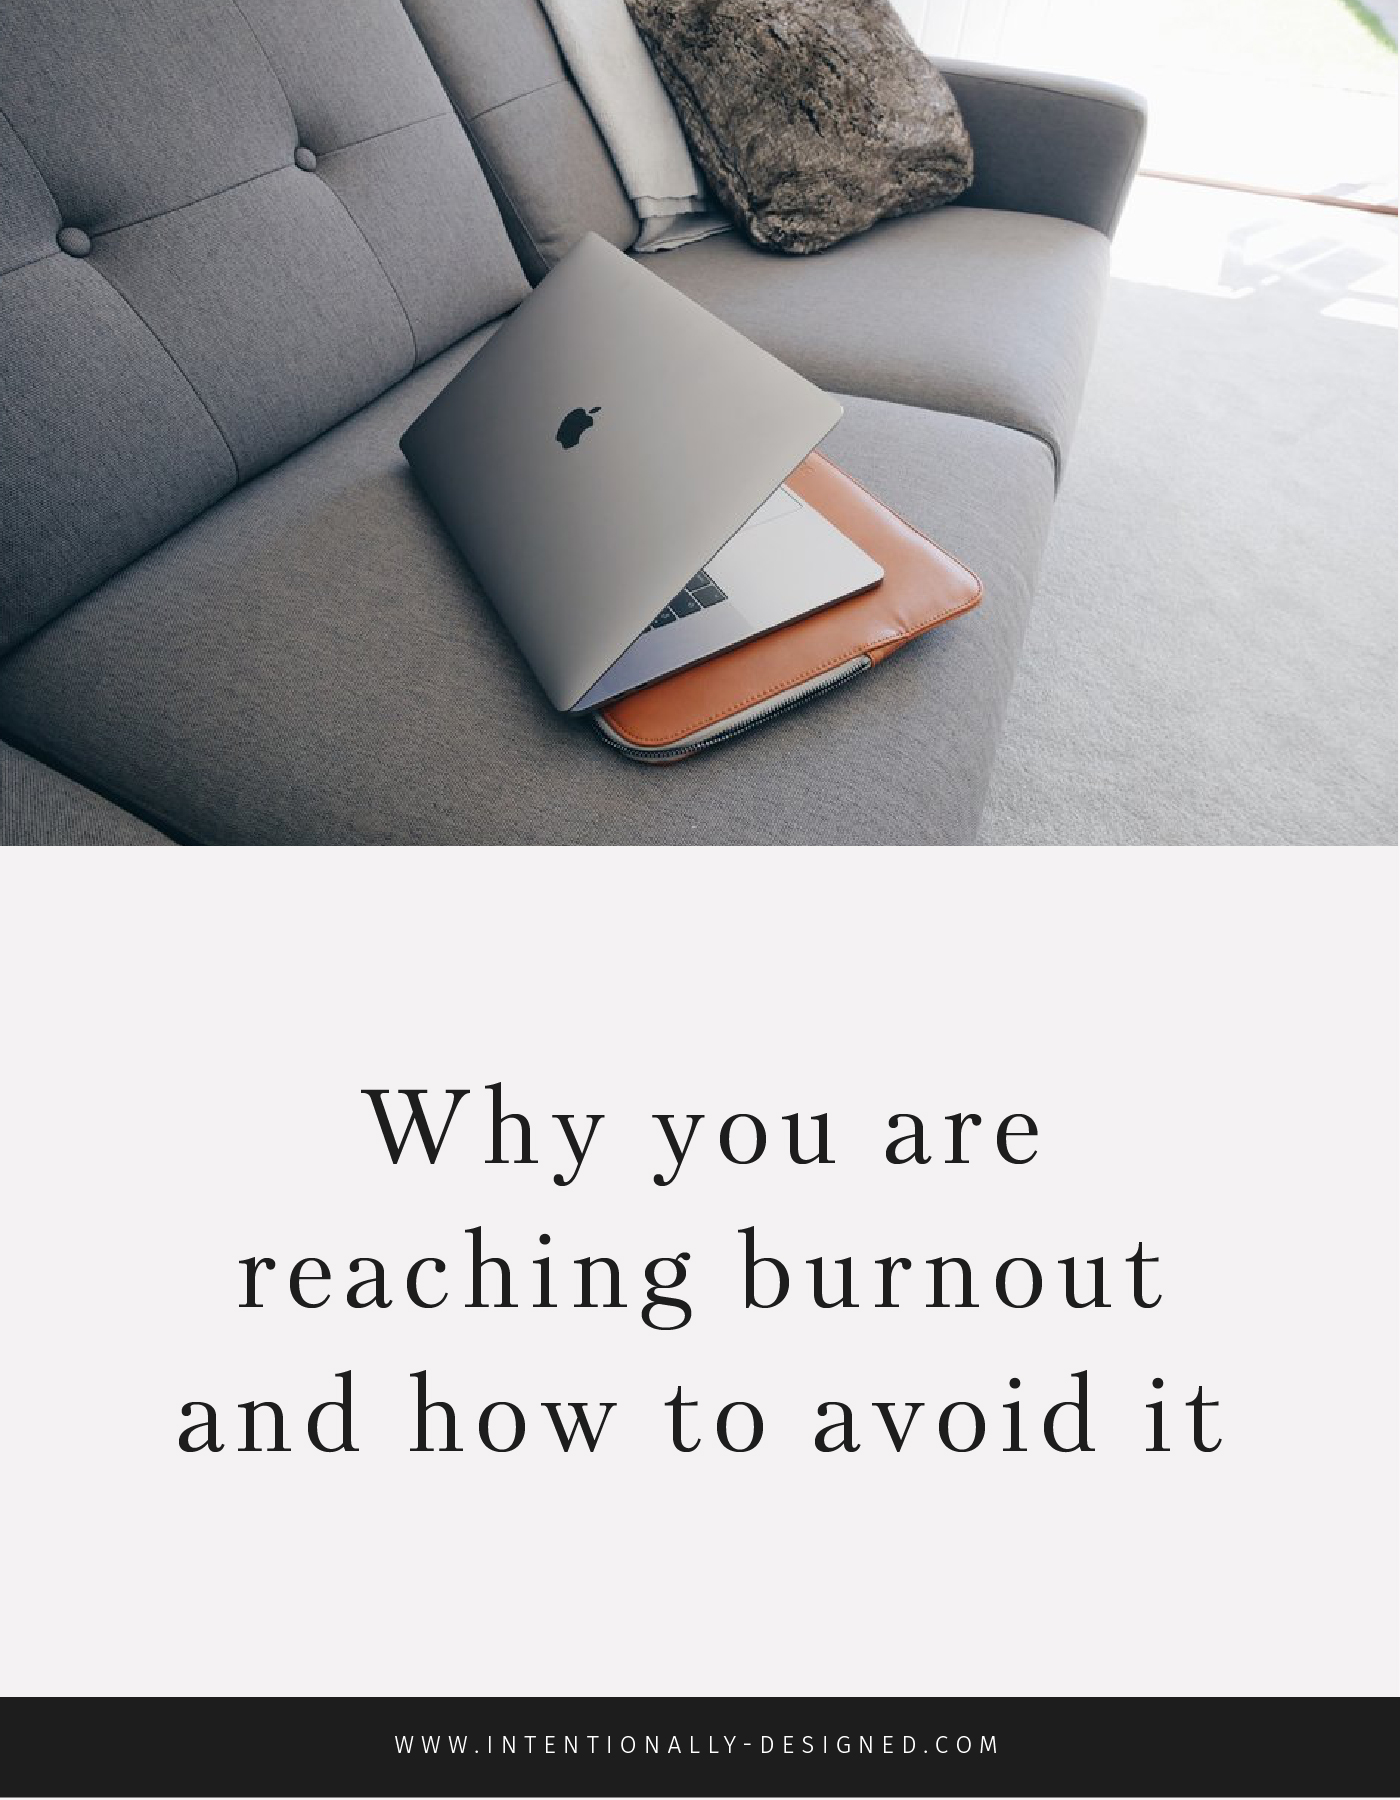 Why you are reaching burnout and how to avoid it